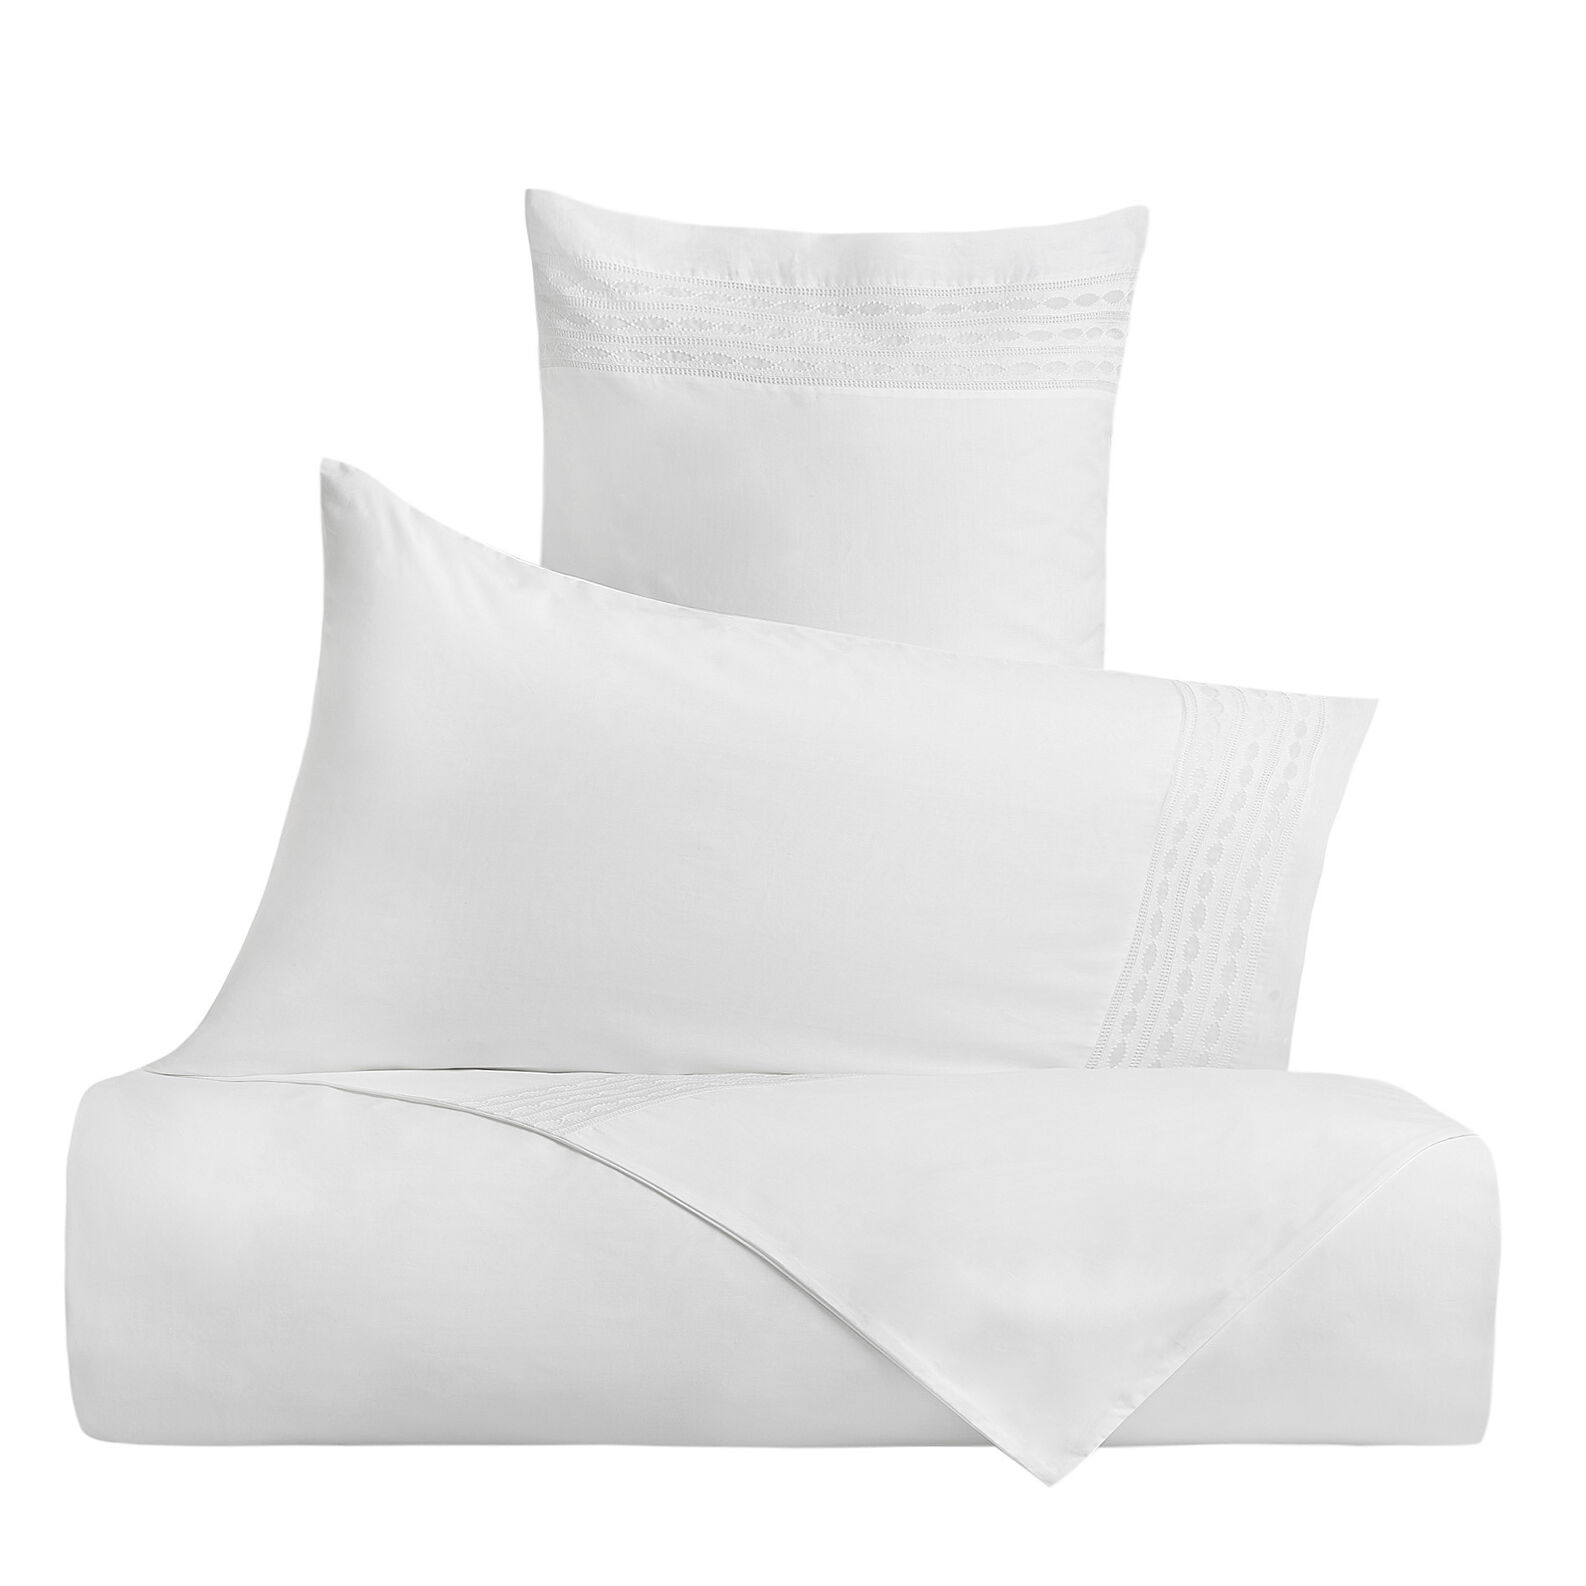 Portofino pillowcase in 100% cotton with embroidered trim